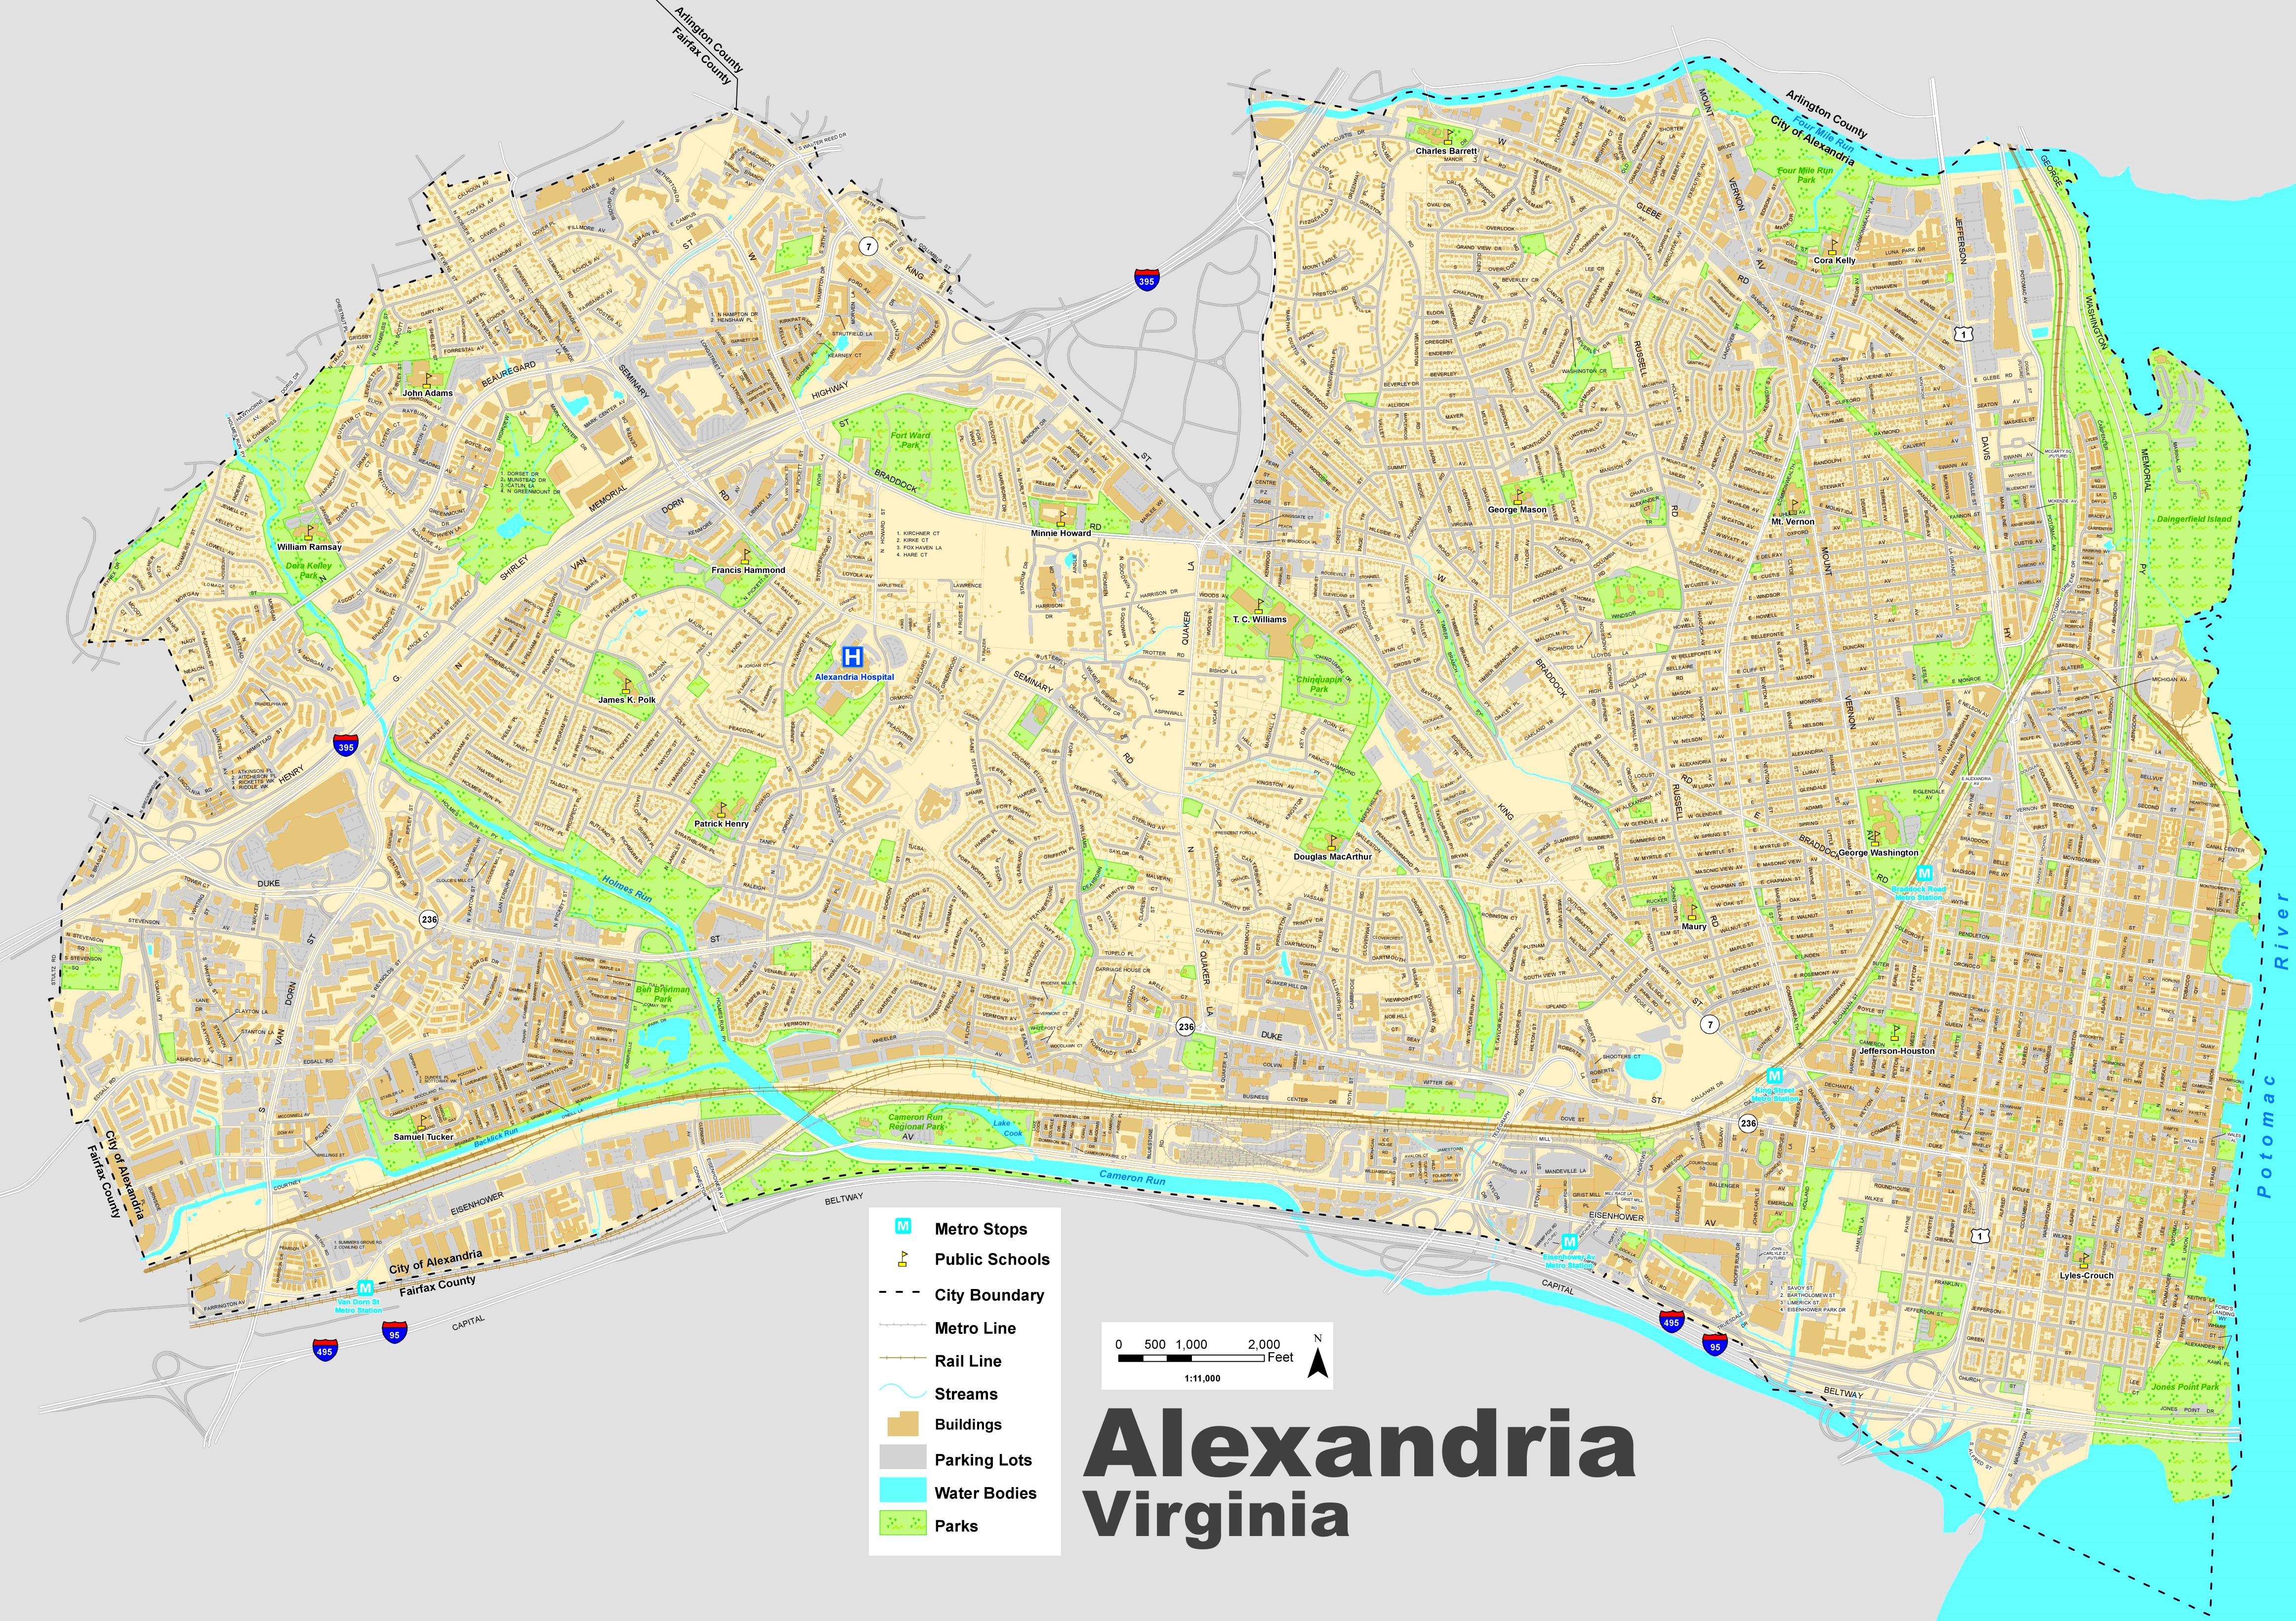 Alexandria Maps Virginia US Maps Of Alexandria - Virginia on a us map